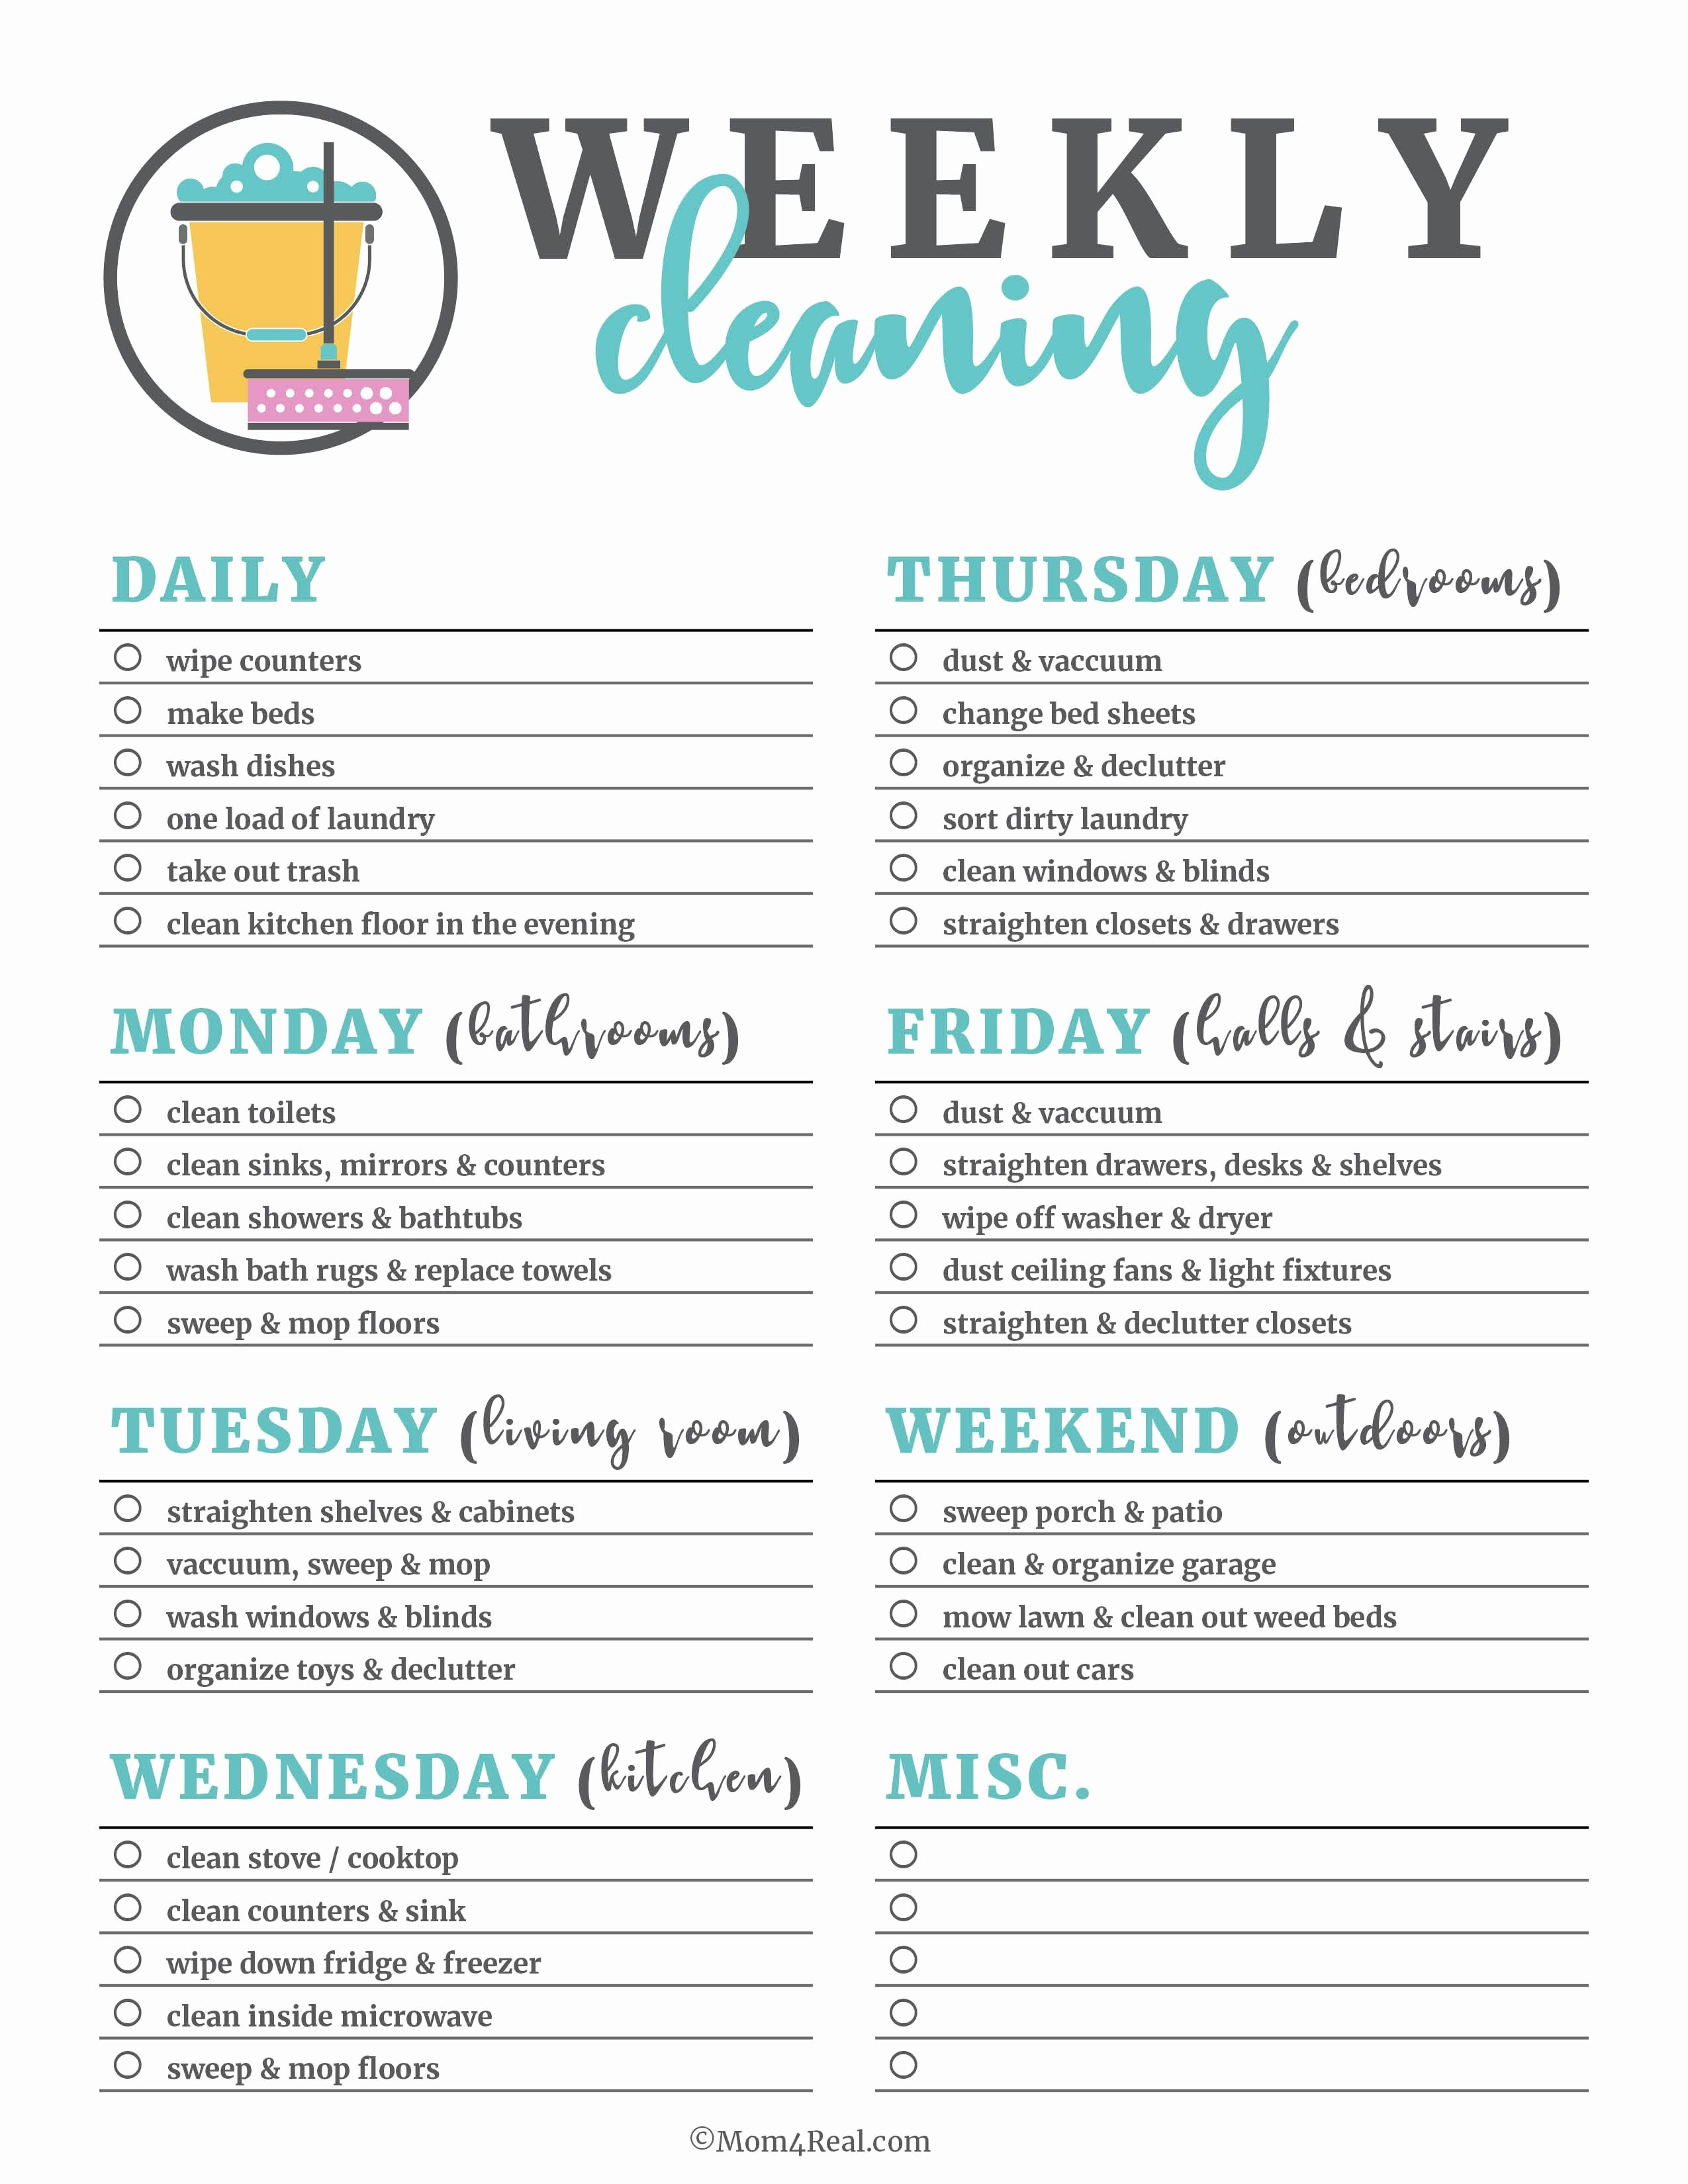 Deep Cleaning Checklist Template Luxury Printable Cleaning Checklists for Daily Weekly and